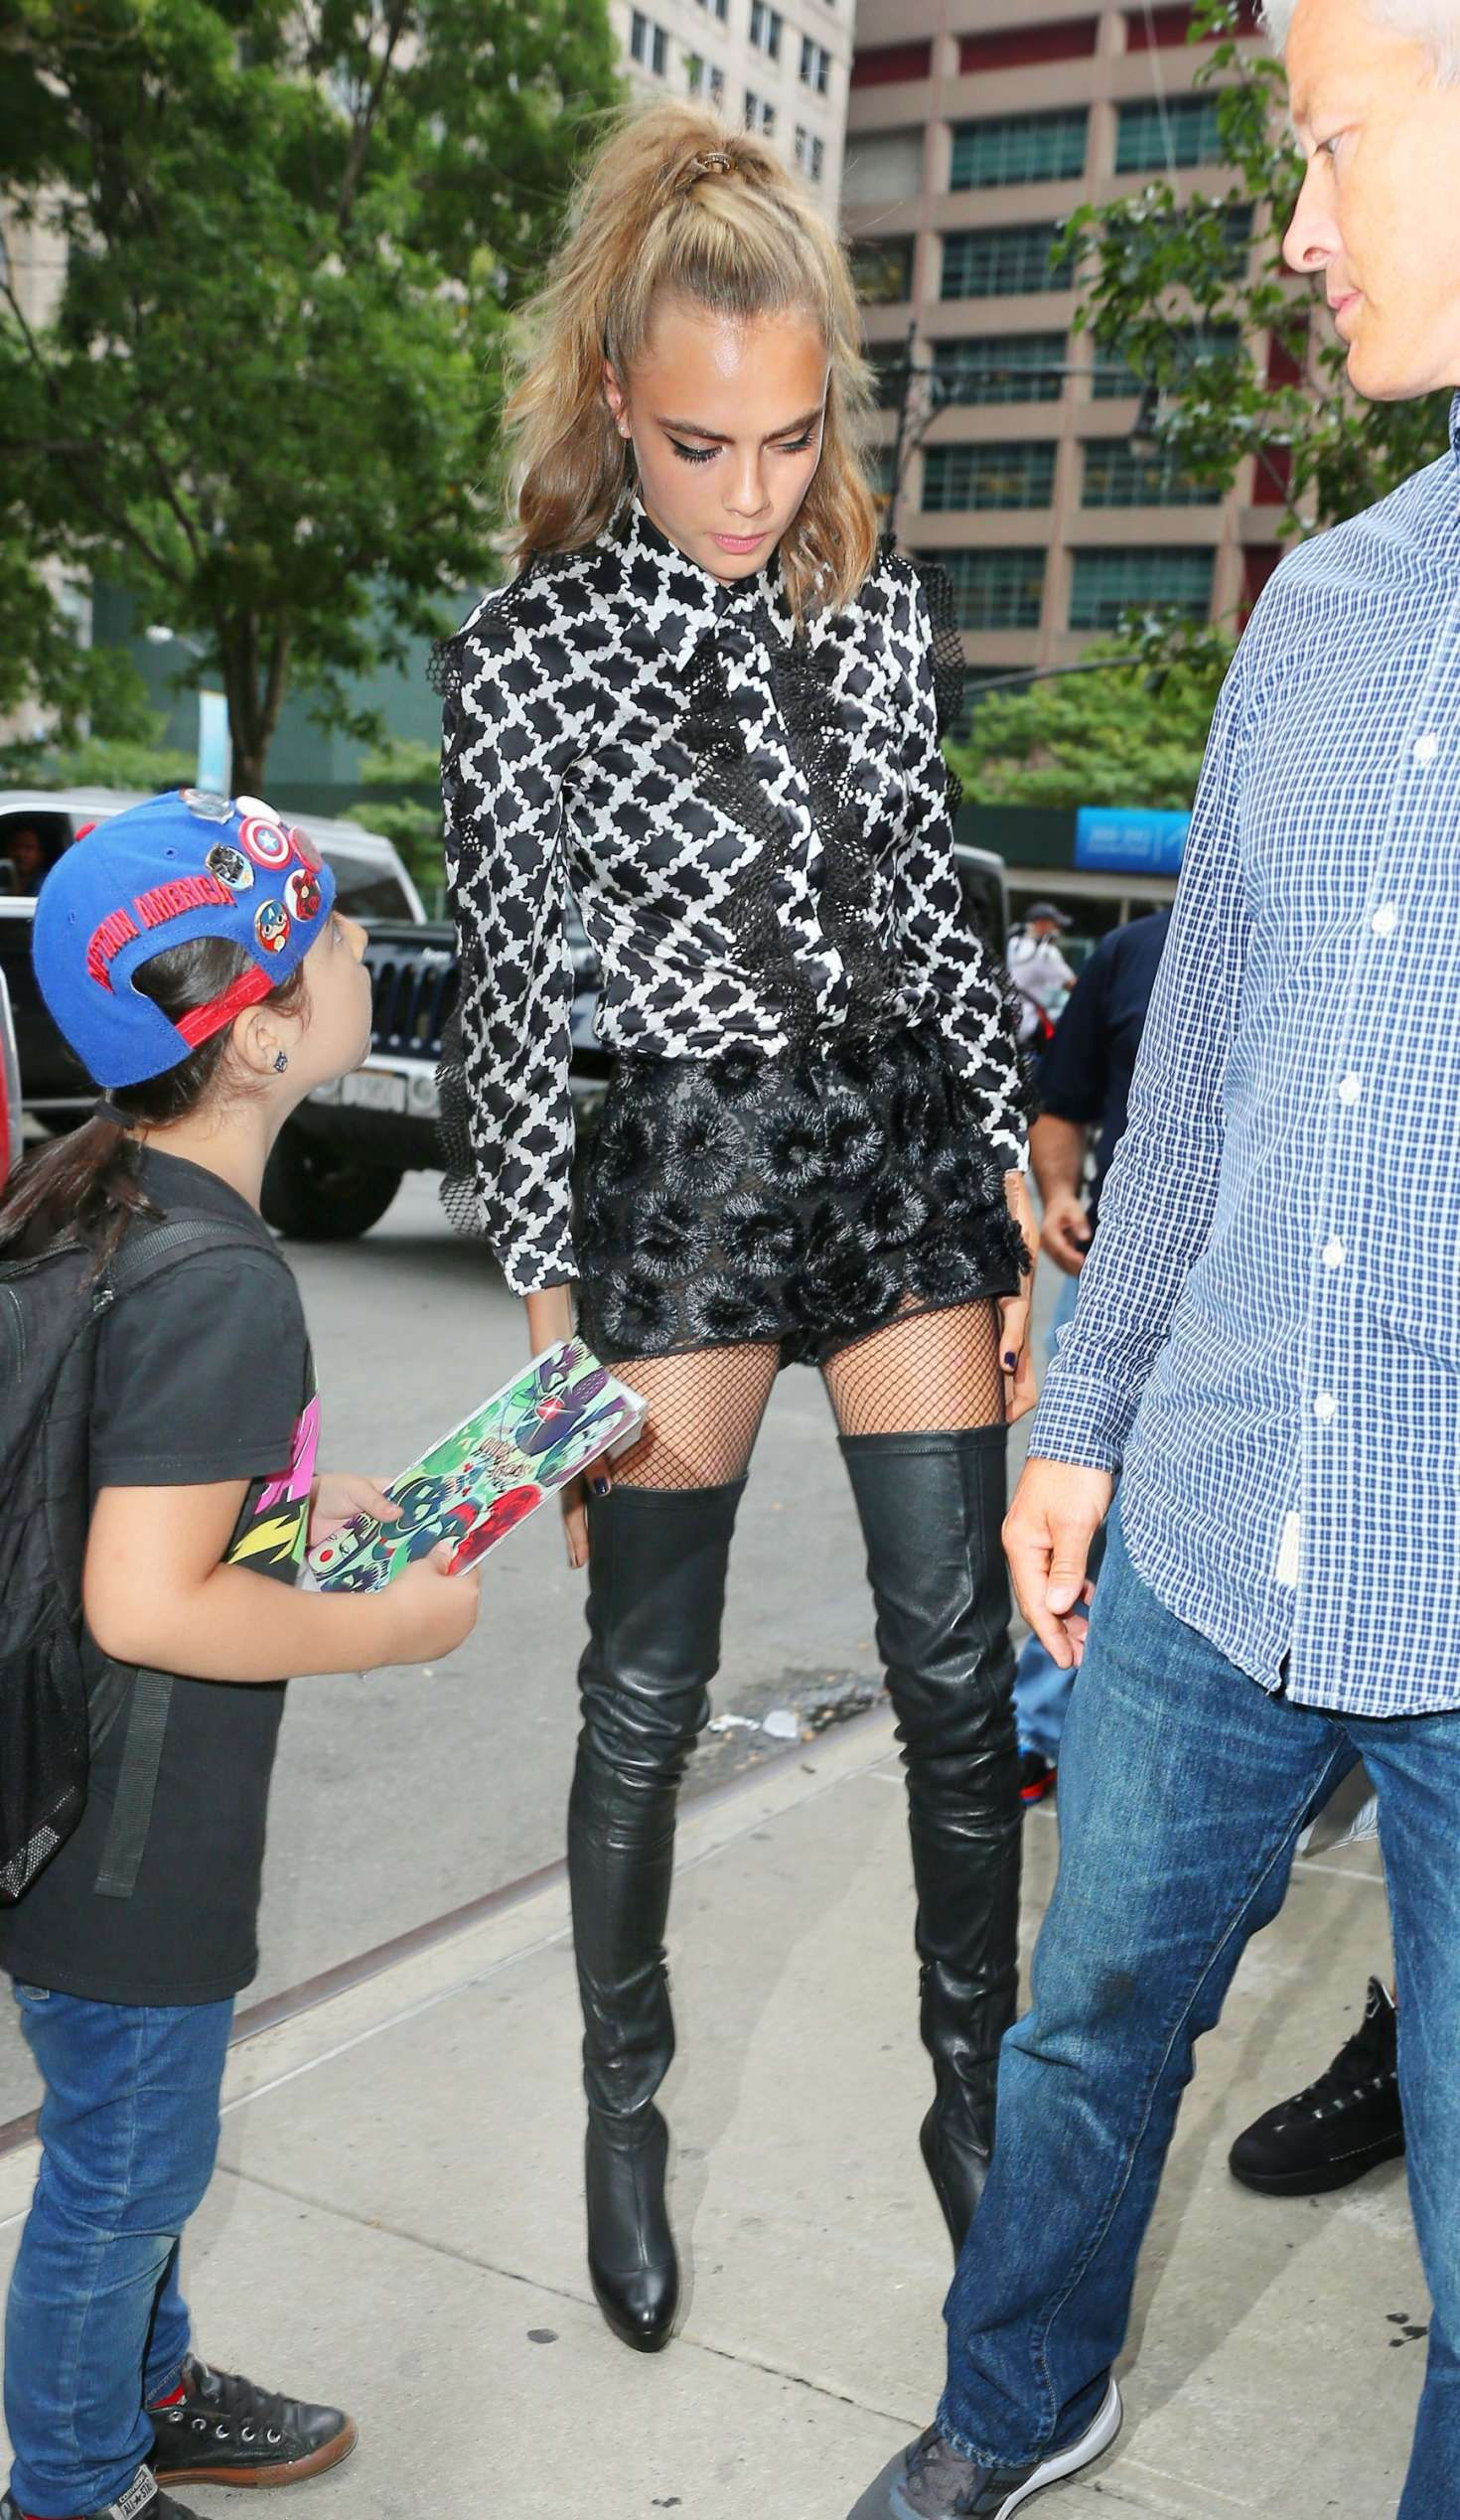 Cara Delevingne in thigh high boots and short shorts -06 - GotCeleb